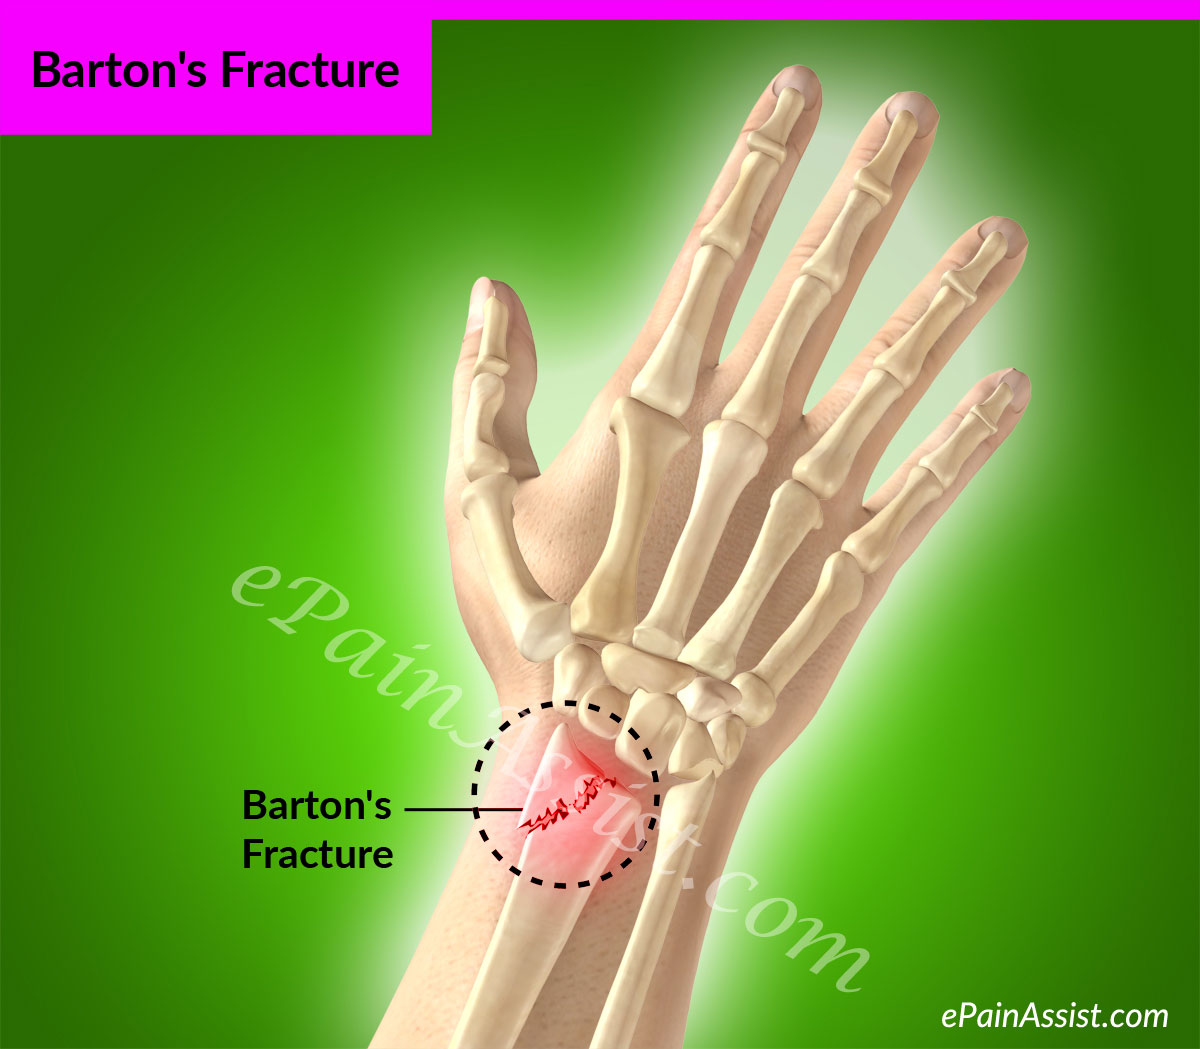 Barton's Fracture